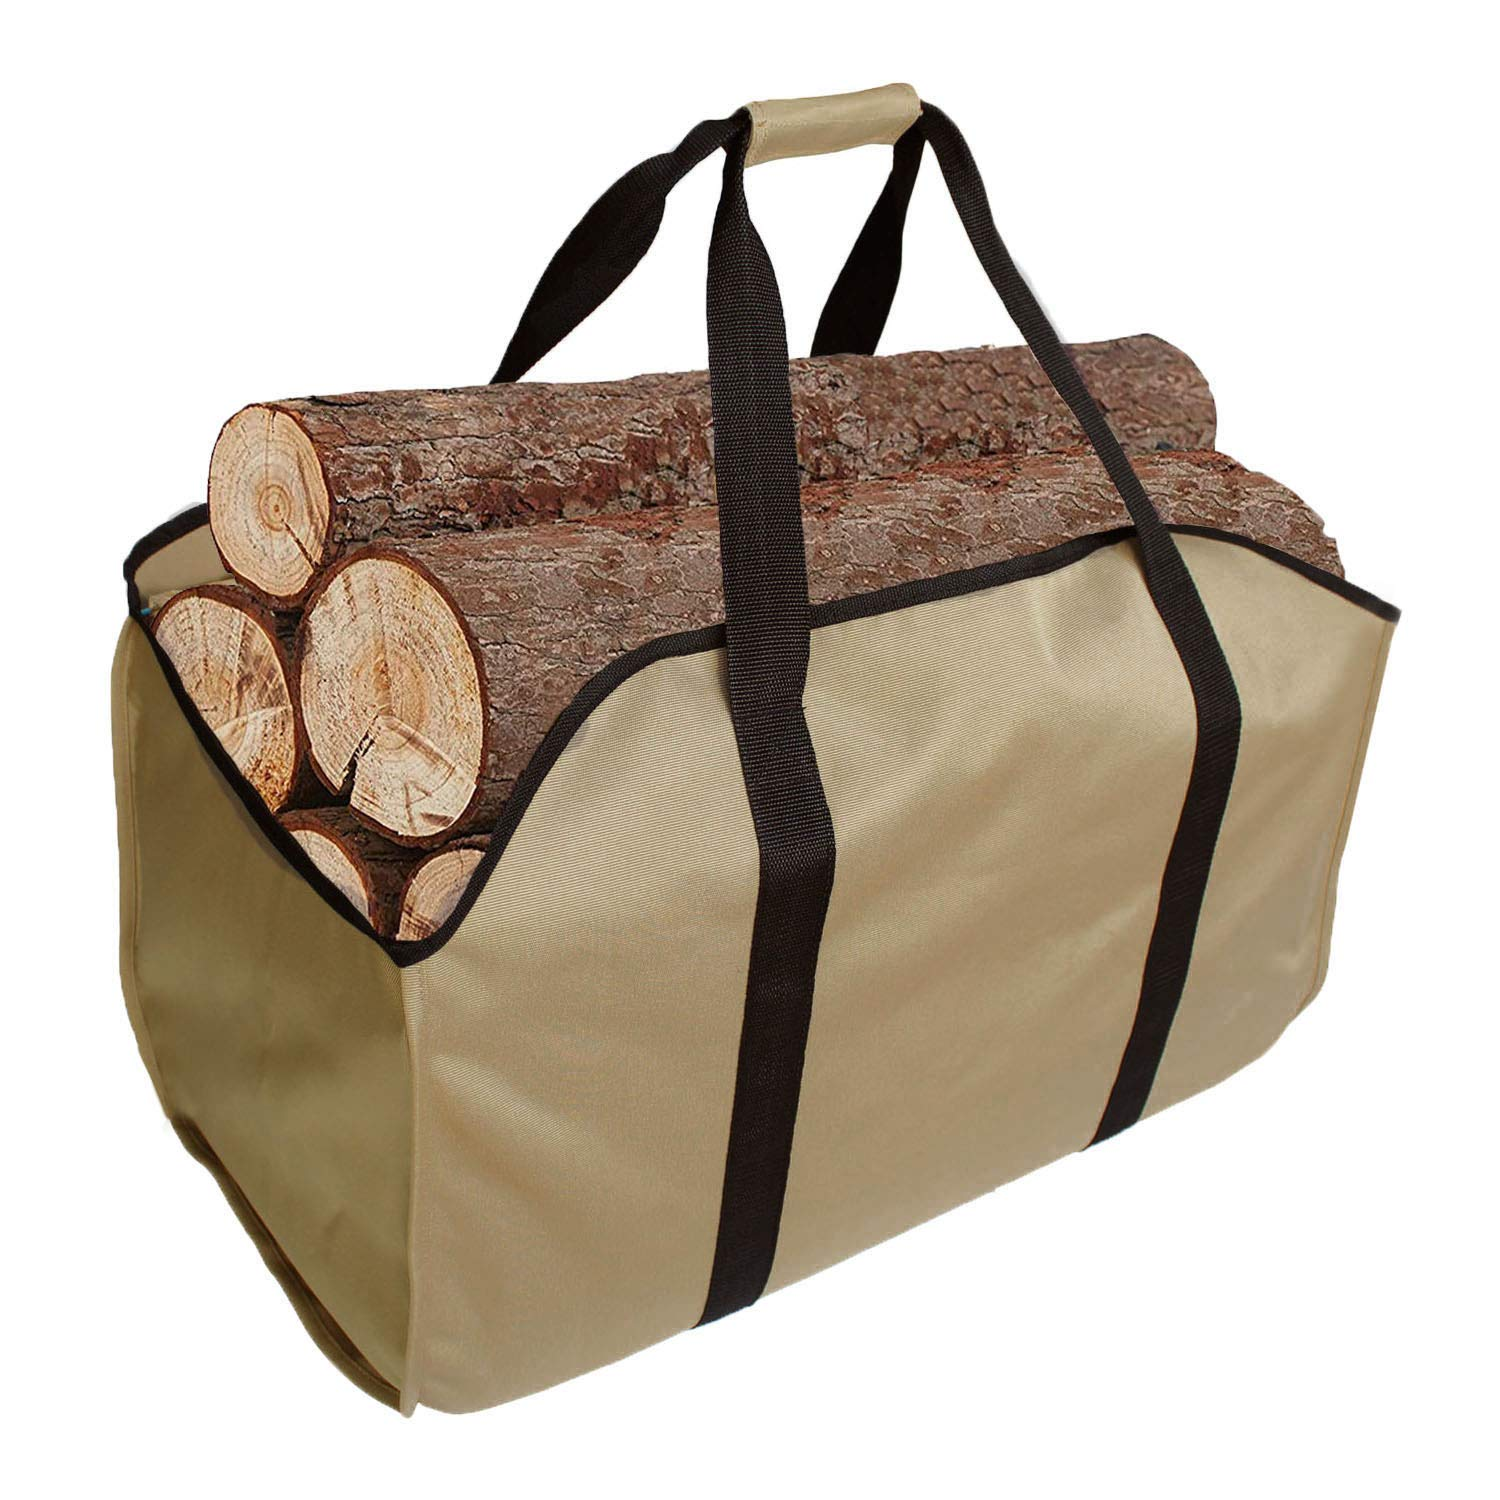 KHIKILY Heavy Duty Large Canvas Log Tote Bag Carrier Indoor Fireplace | Firewood Carriers Totes Holders Woodpile Rack for Outdoor Tubular Birchwood Stand Hearth Stove Tools Set Basket (Color 2) by KHIKILY